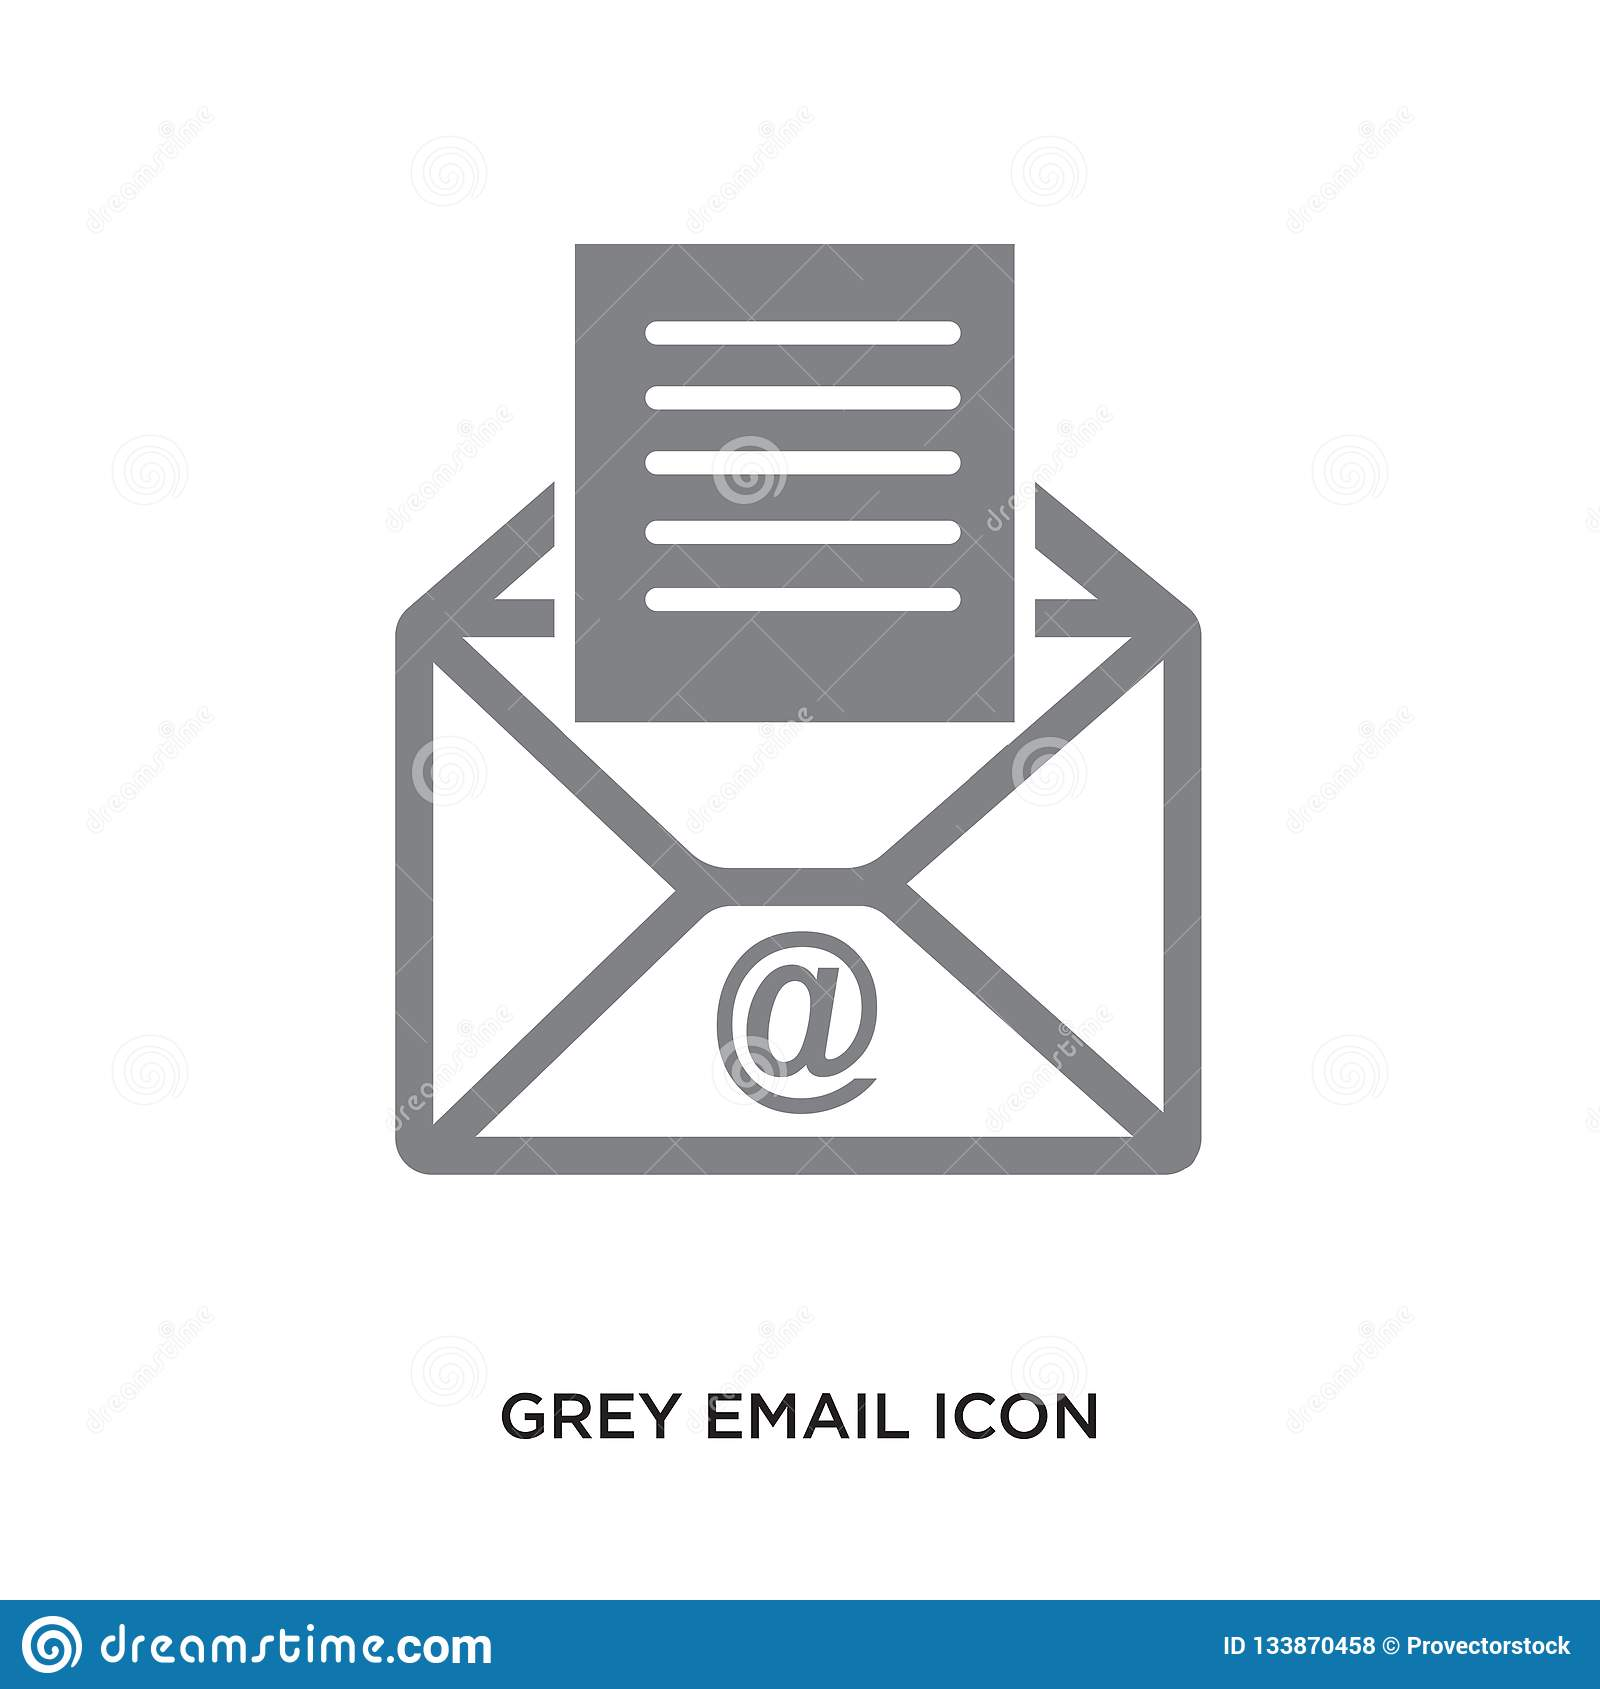 Grey Email Icon Stock Illustrations 2 797 Grey Email Icon Stock Illustrations Vectors Clipart Dreamstime